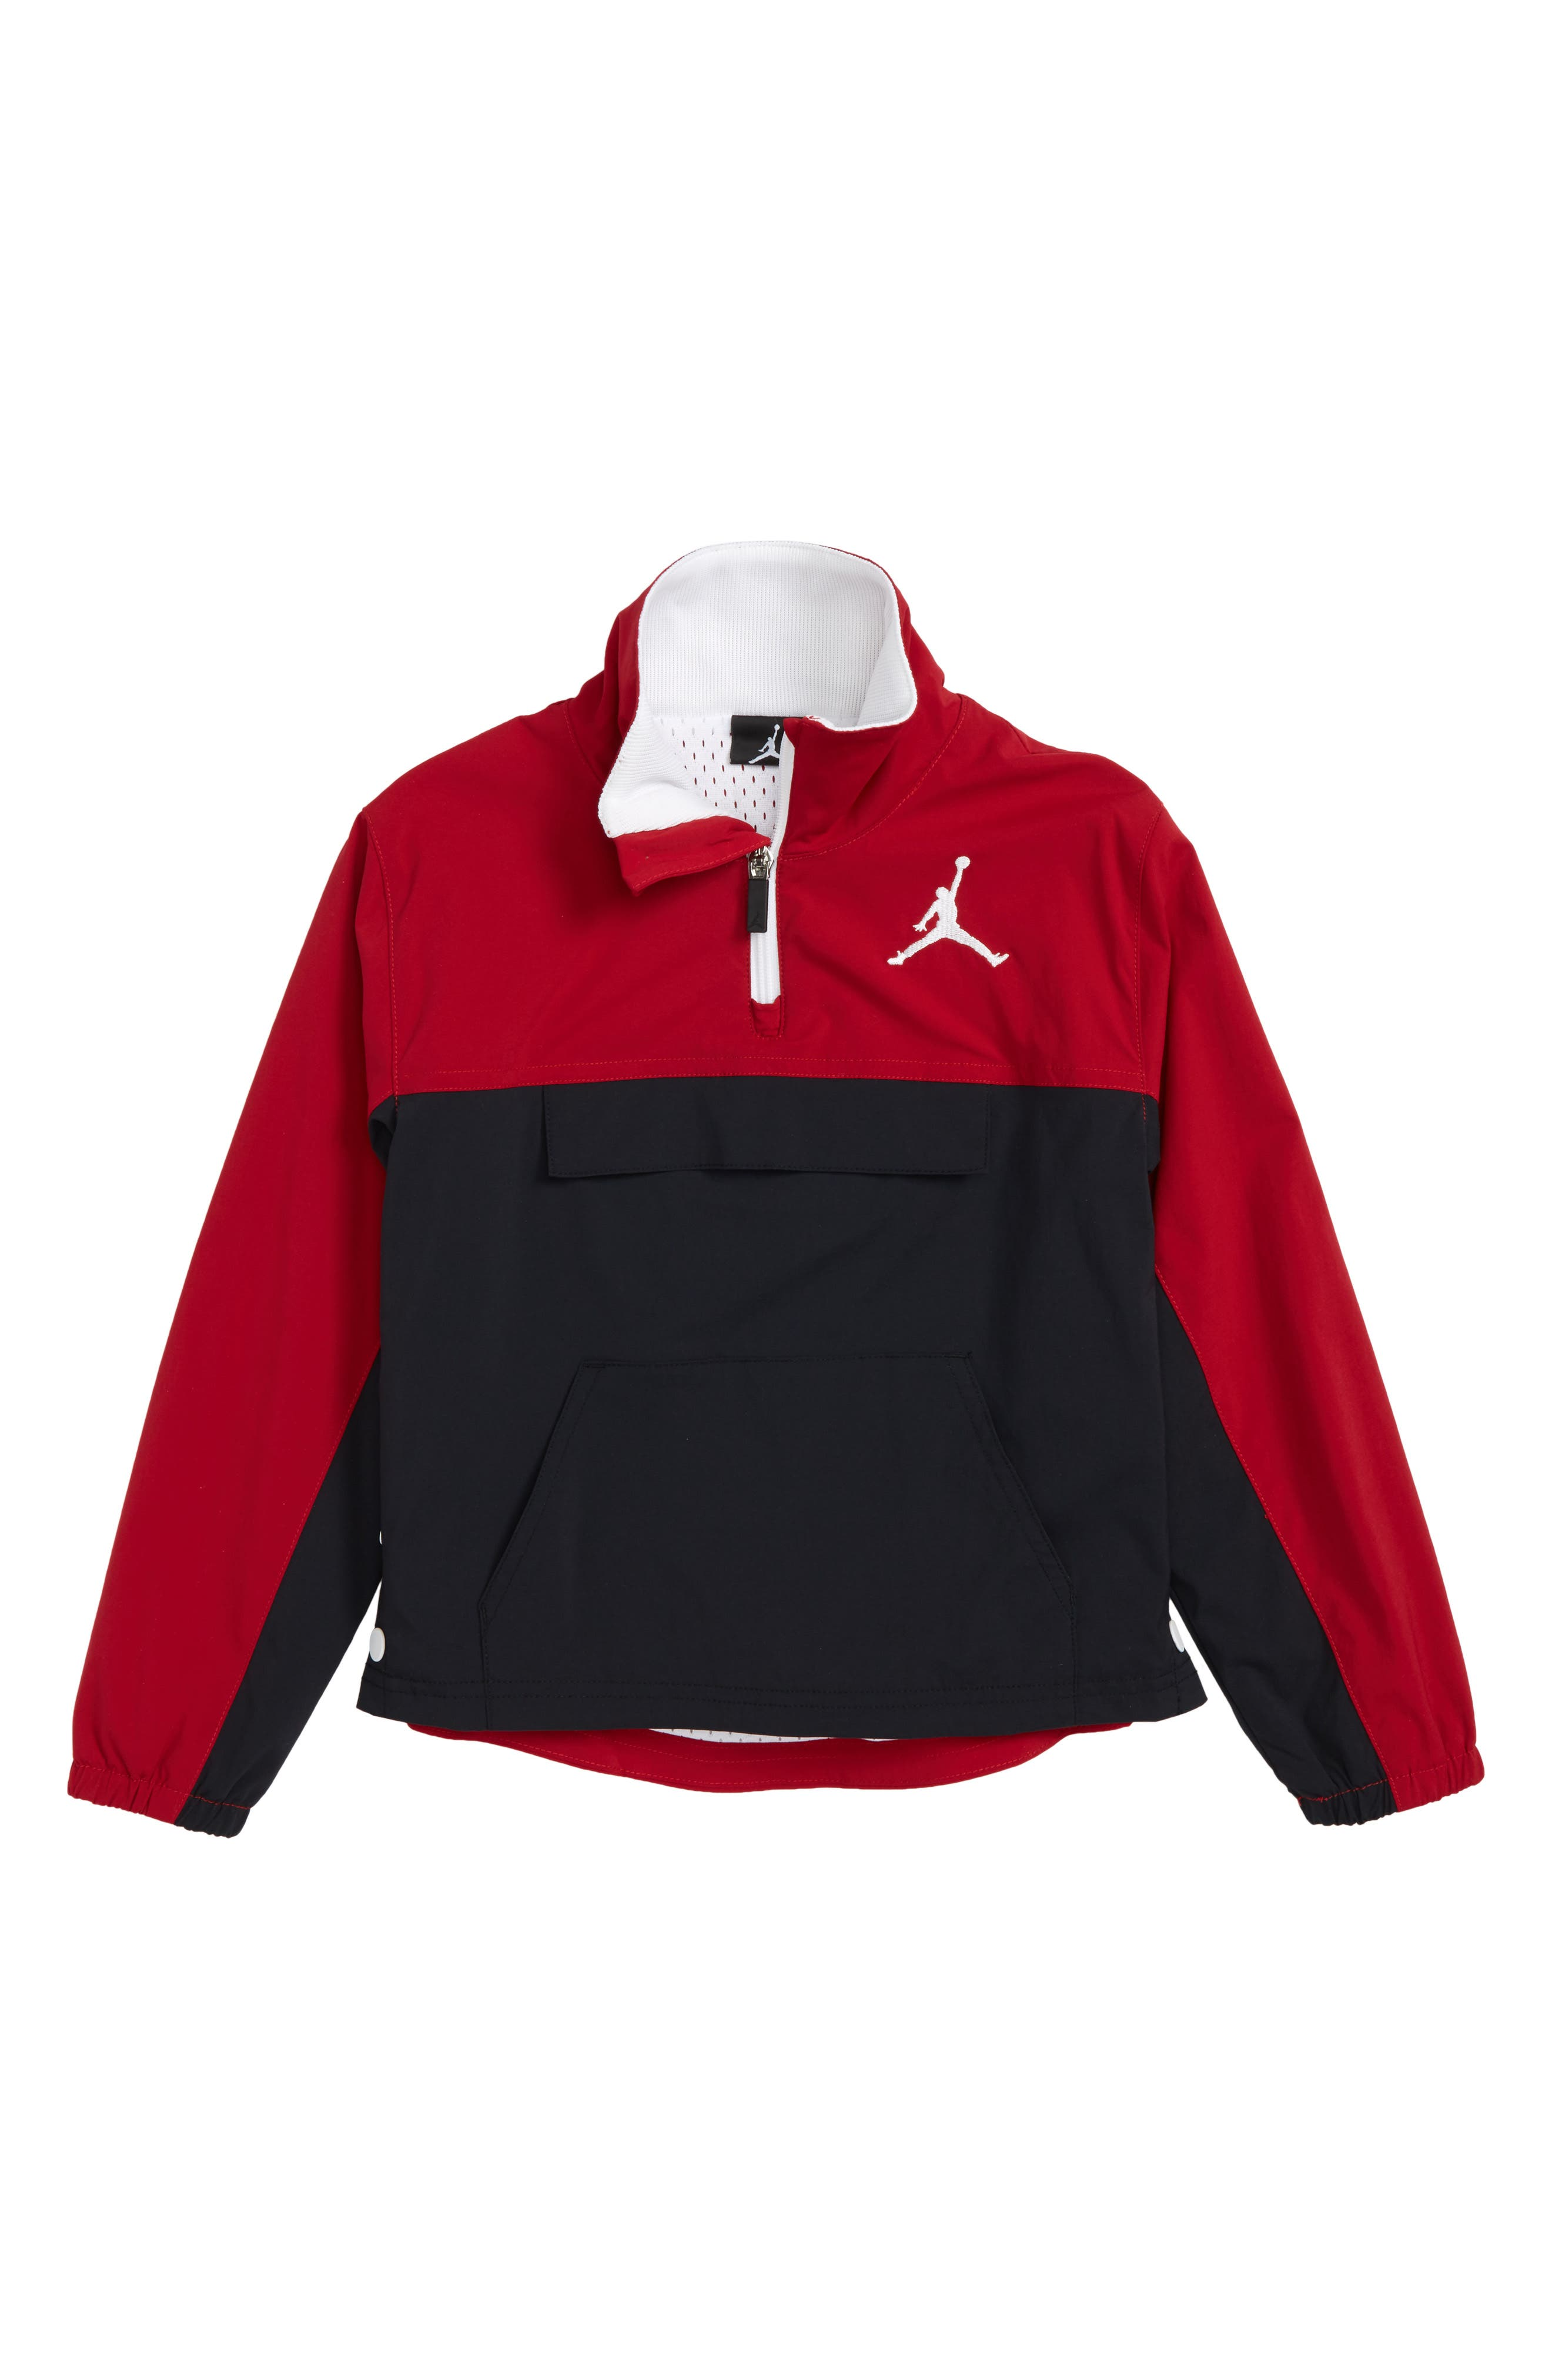 Jordan AJ '90s Popover Quarter Zip Pullover,                         Main,                         color, Black